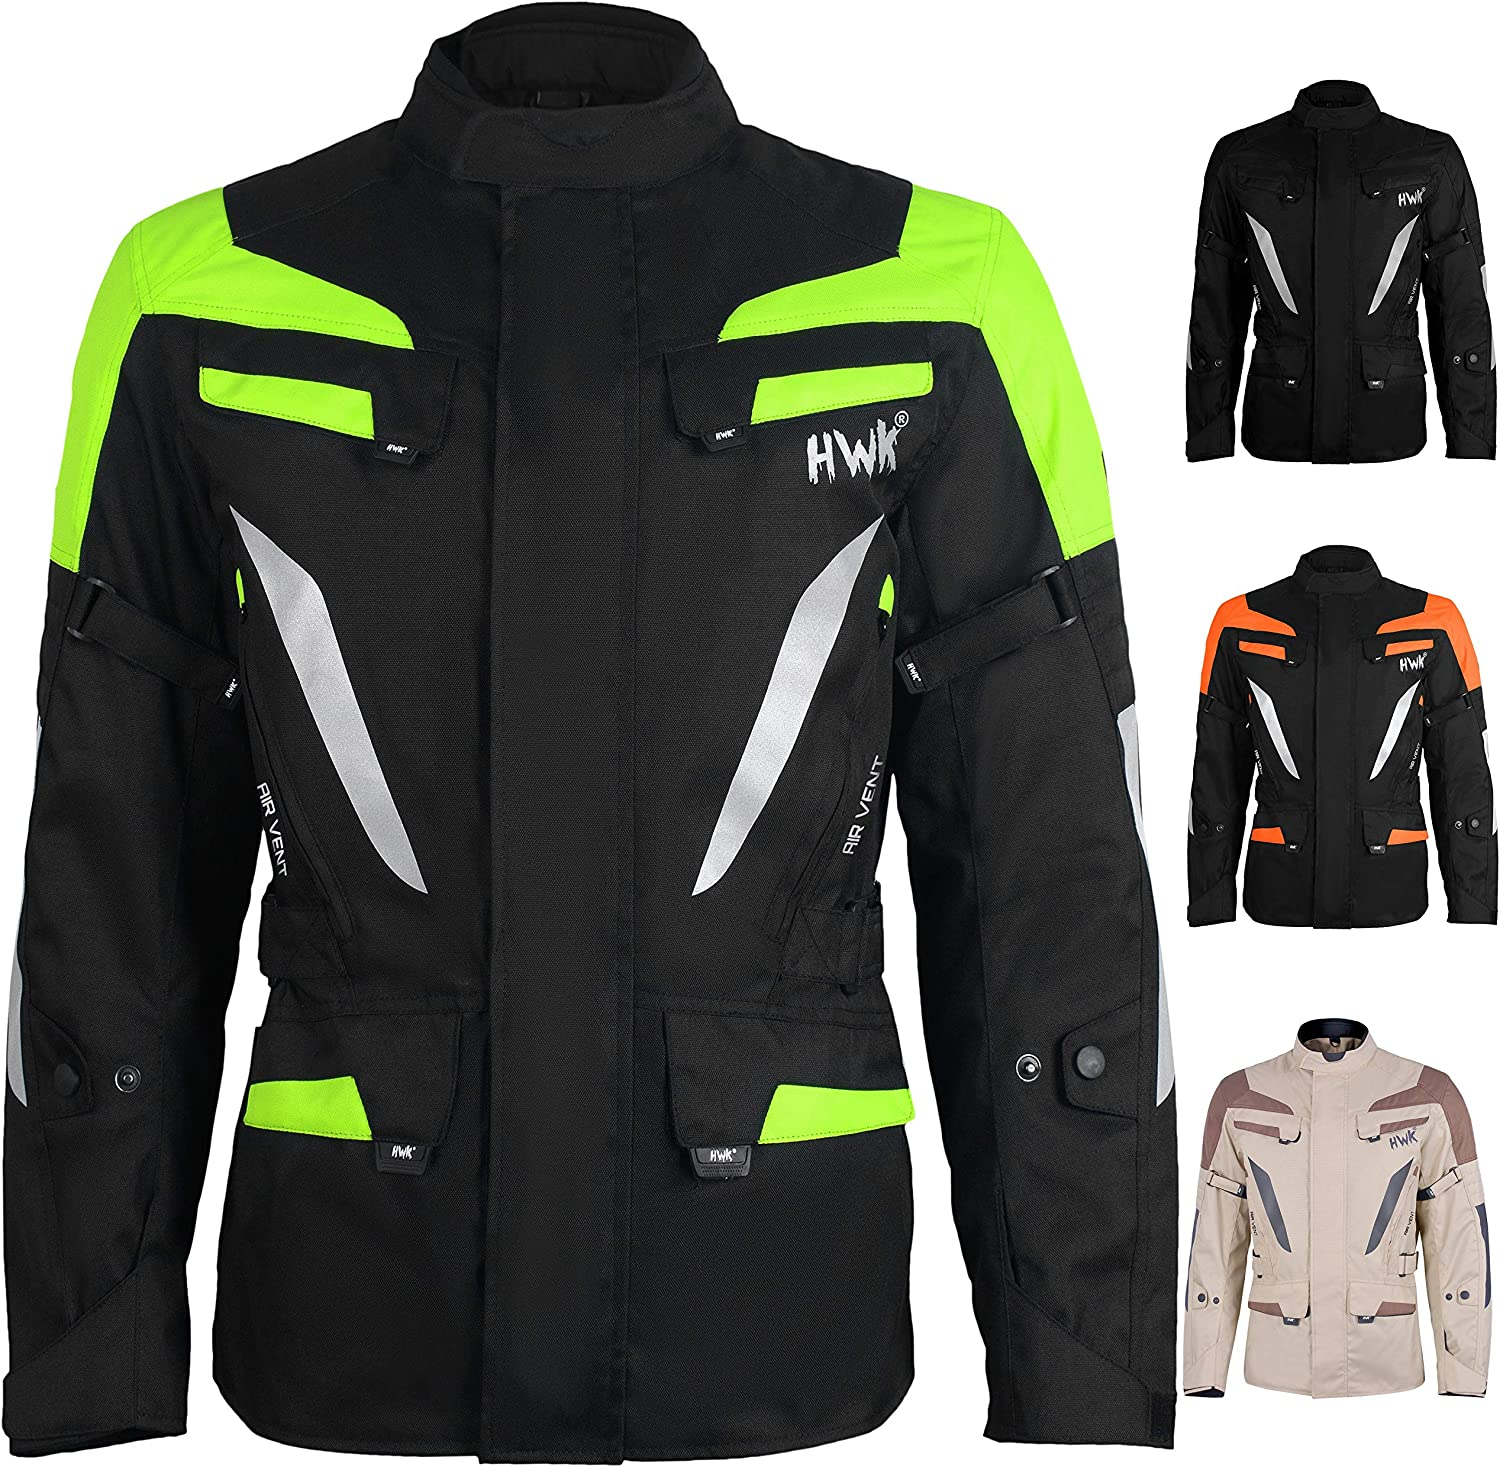 Adventure//Touring Mens Motorcycle Jacket Adv Dual Sport Racing CE Armored Waterproof Windproof Jackets All-Weather Jet-Black, 2XL